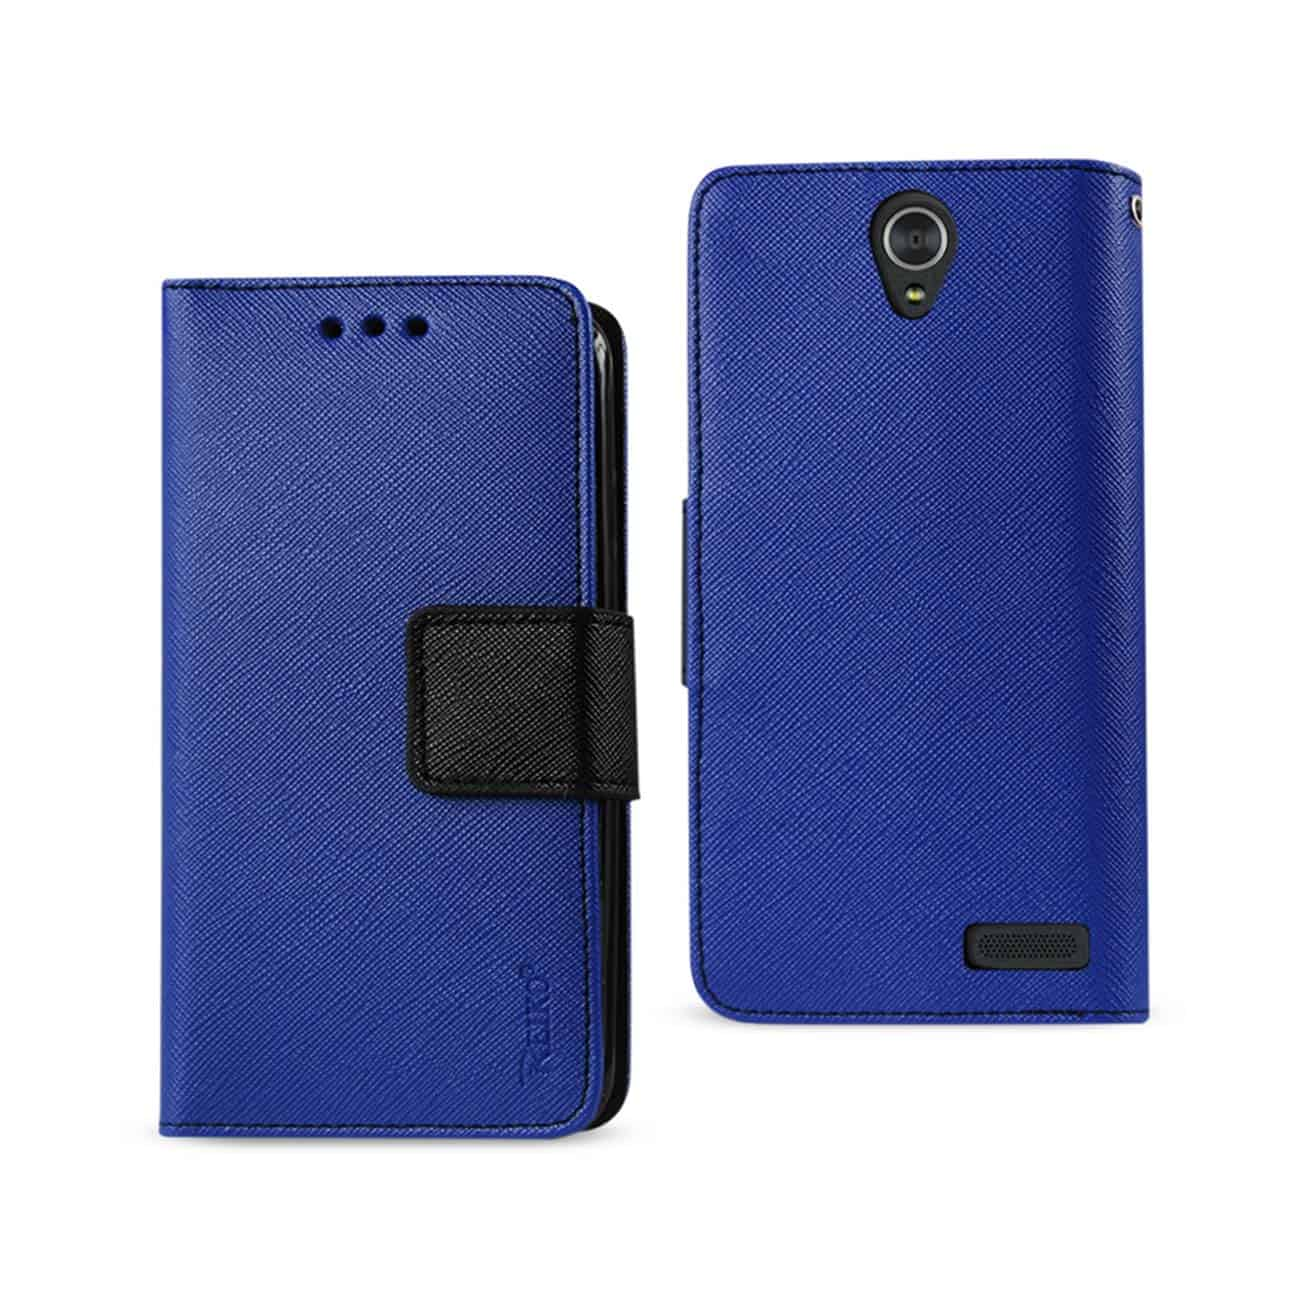 ZTE GRAND X3 3-IN-1 WALLET CASE IN NAVY